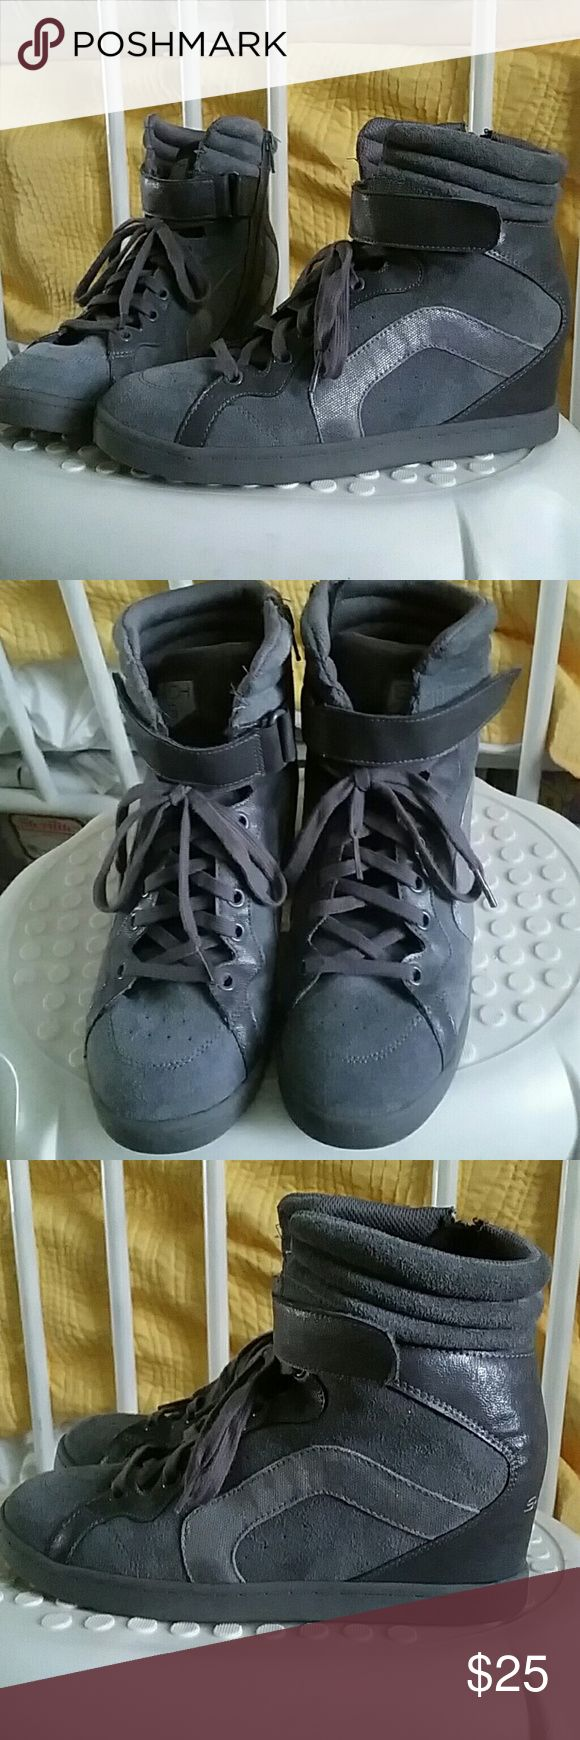 Hidden wedge sneakers Skechers SKCH+3 hidden wedge sneakers women's size 8 slightly used but in great condition, price is negotiable ? Shoes Wedges